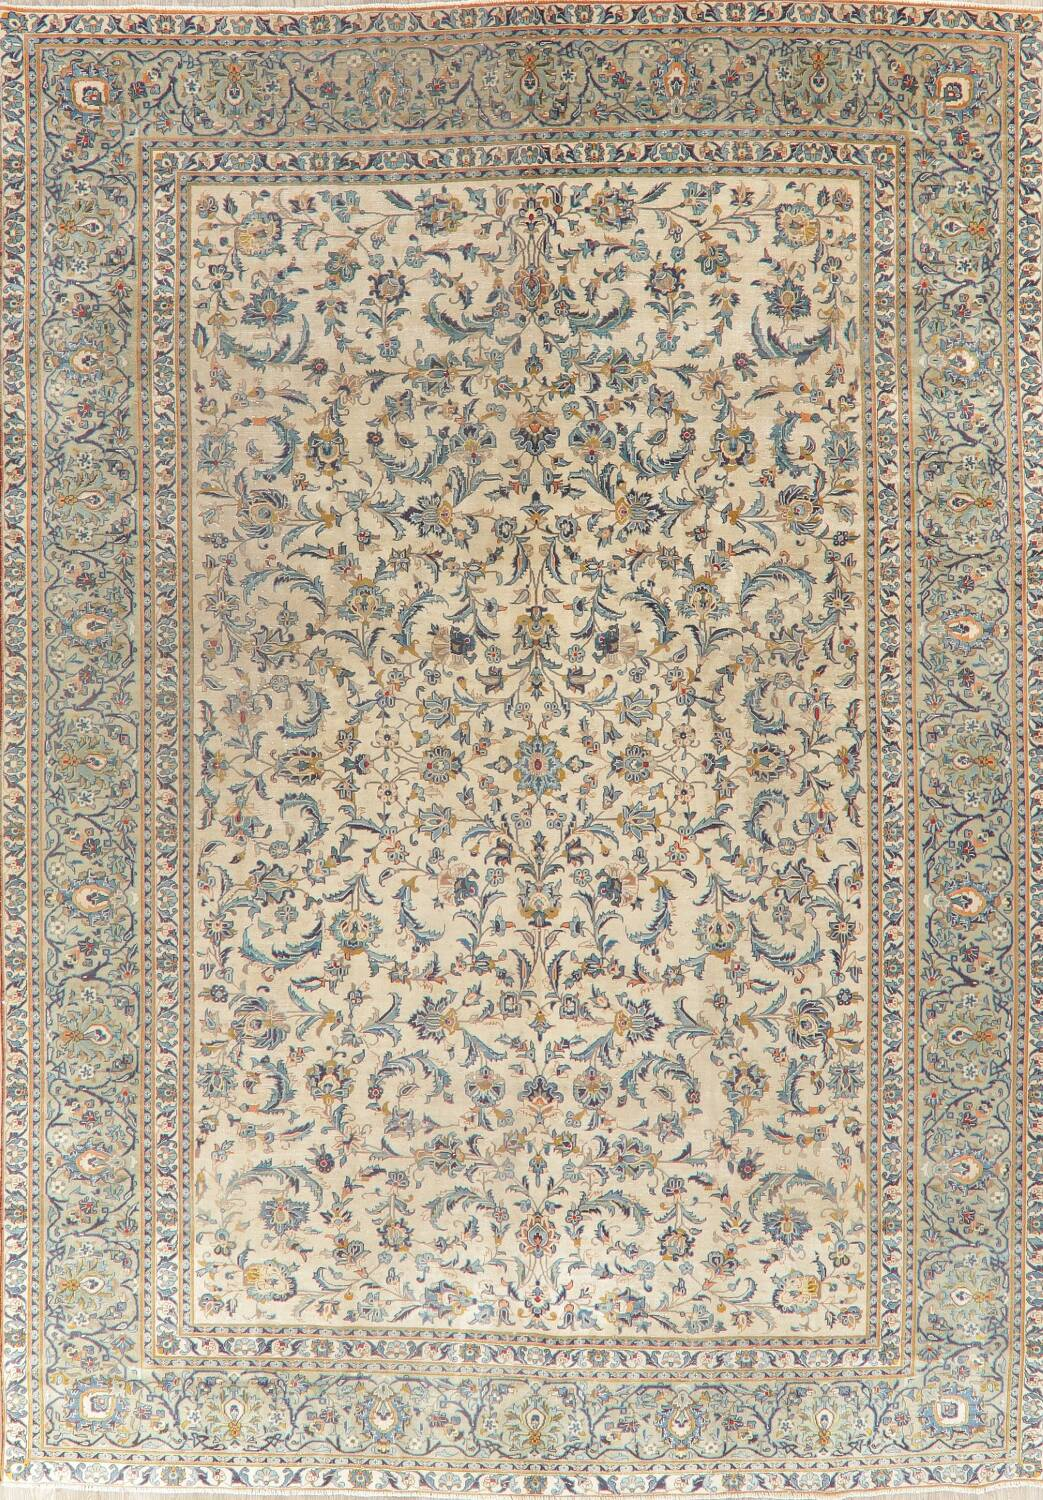 Antique Green Floral Kashan Persian Area Rug 10x14 image 1